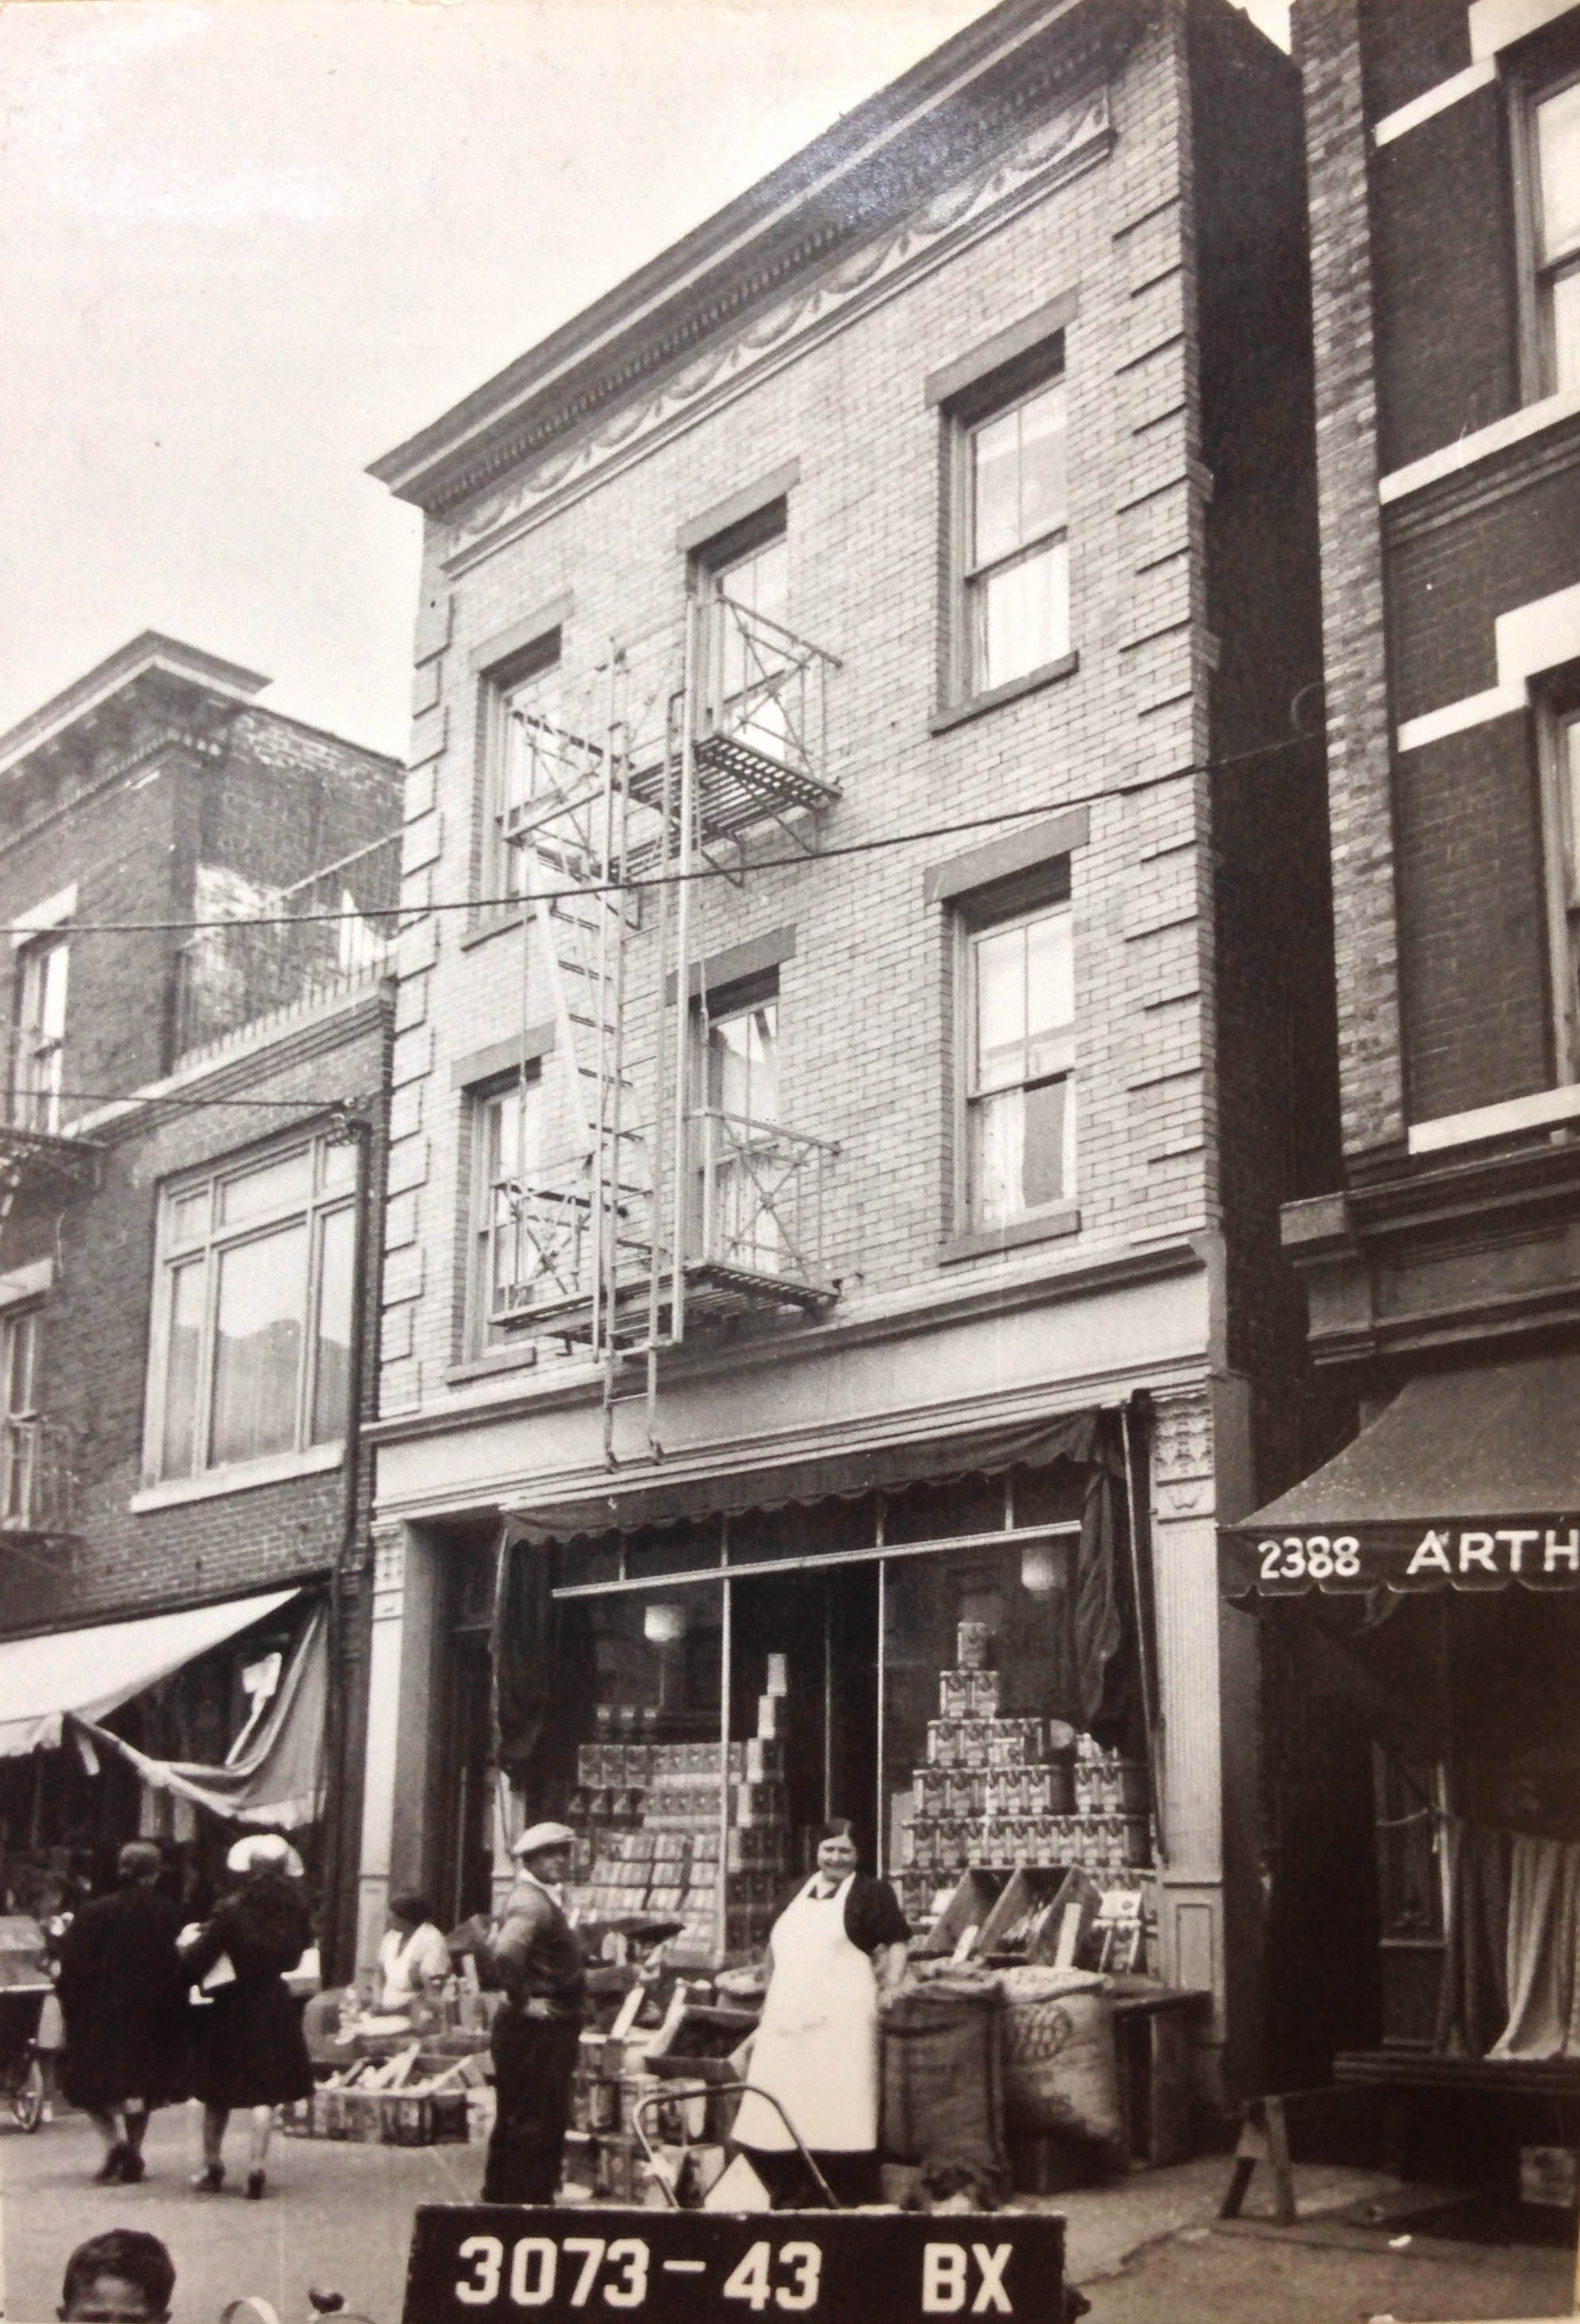 2390 Arthur Avenue, Bronx, circa 1940. In the heart of the Bronx's Little Italy, we see a shop keeper and patron looking directly at the camera as the tax photo is taken.Department of Finance Collection, NYC Municipal Archives.